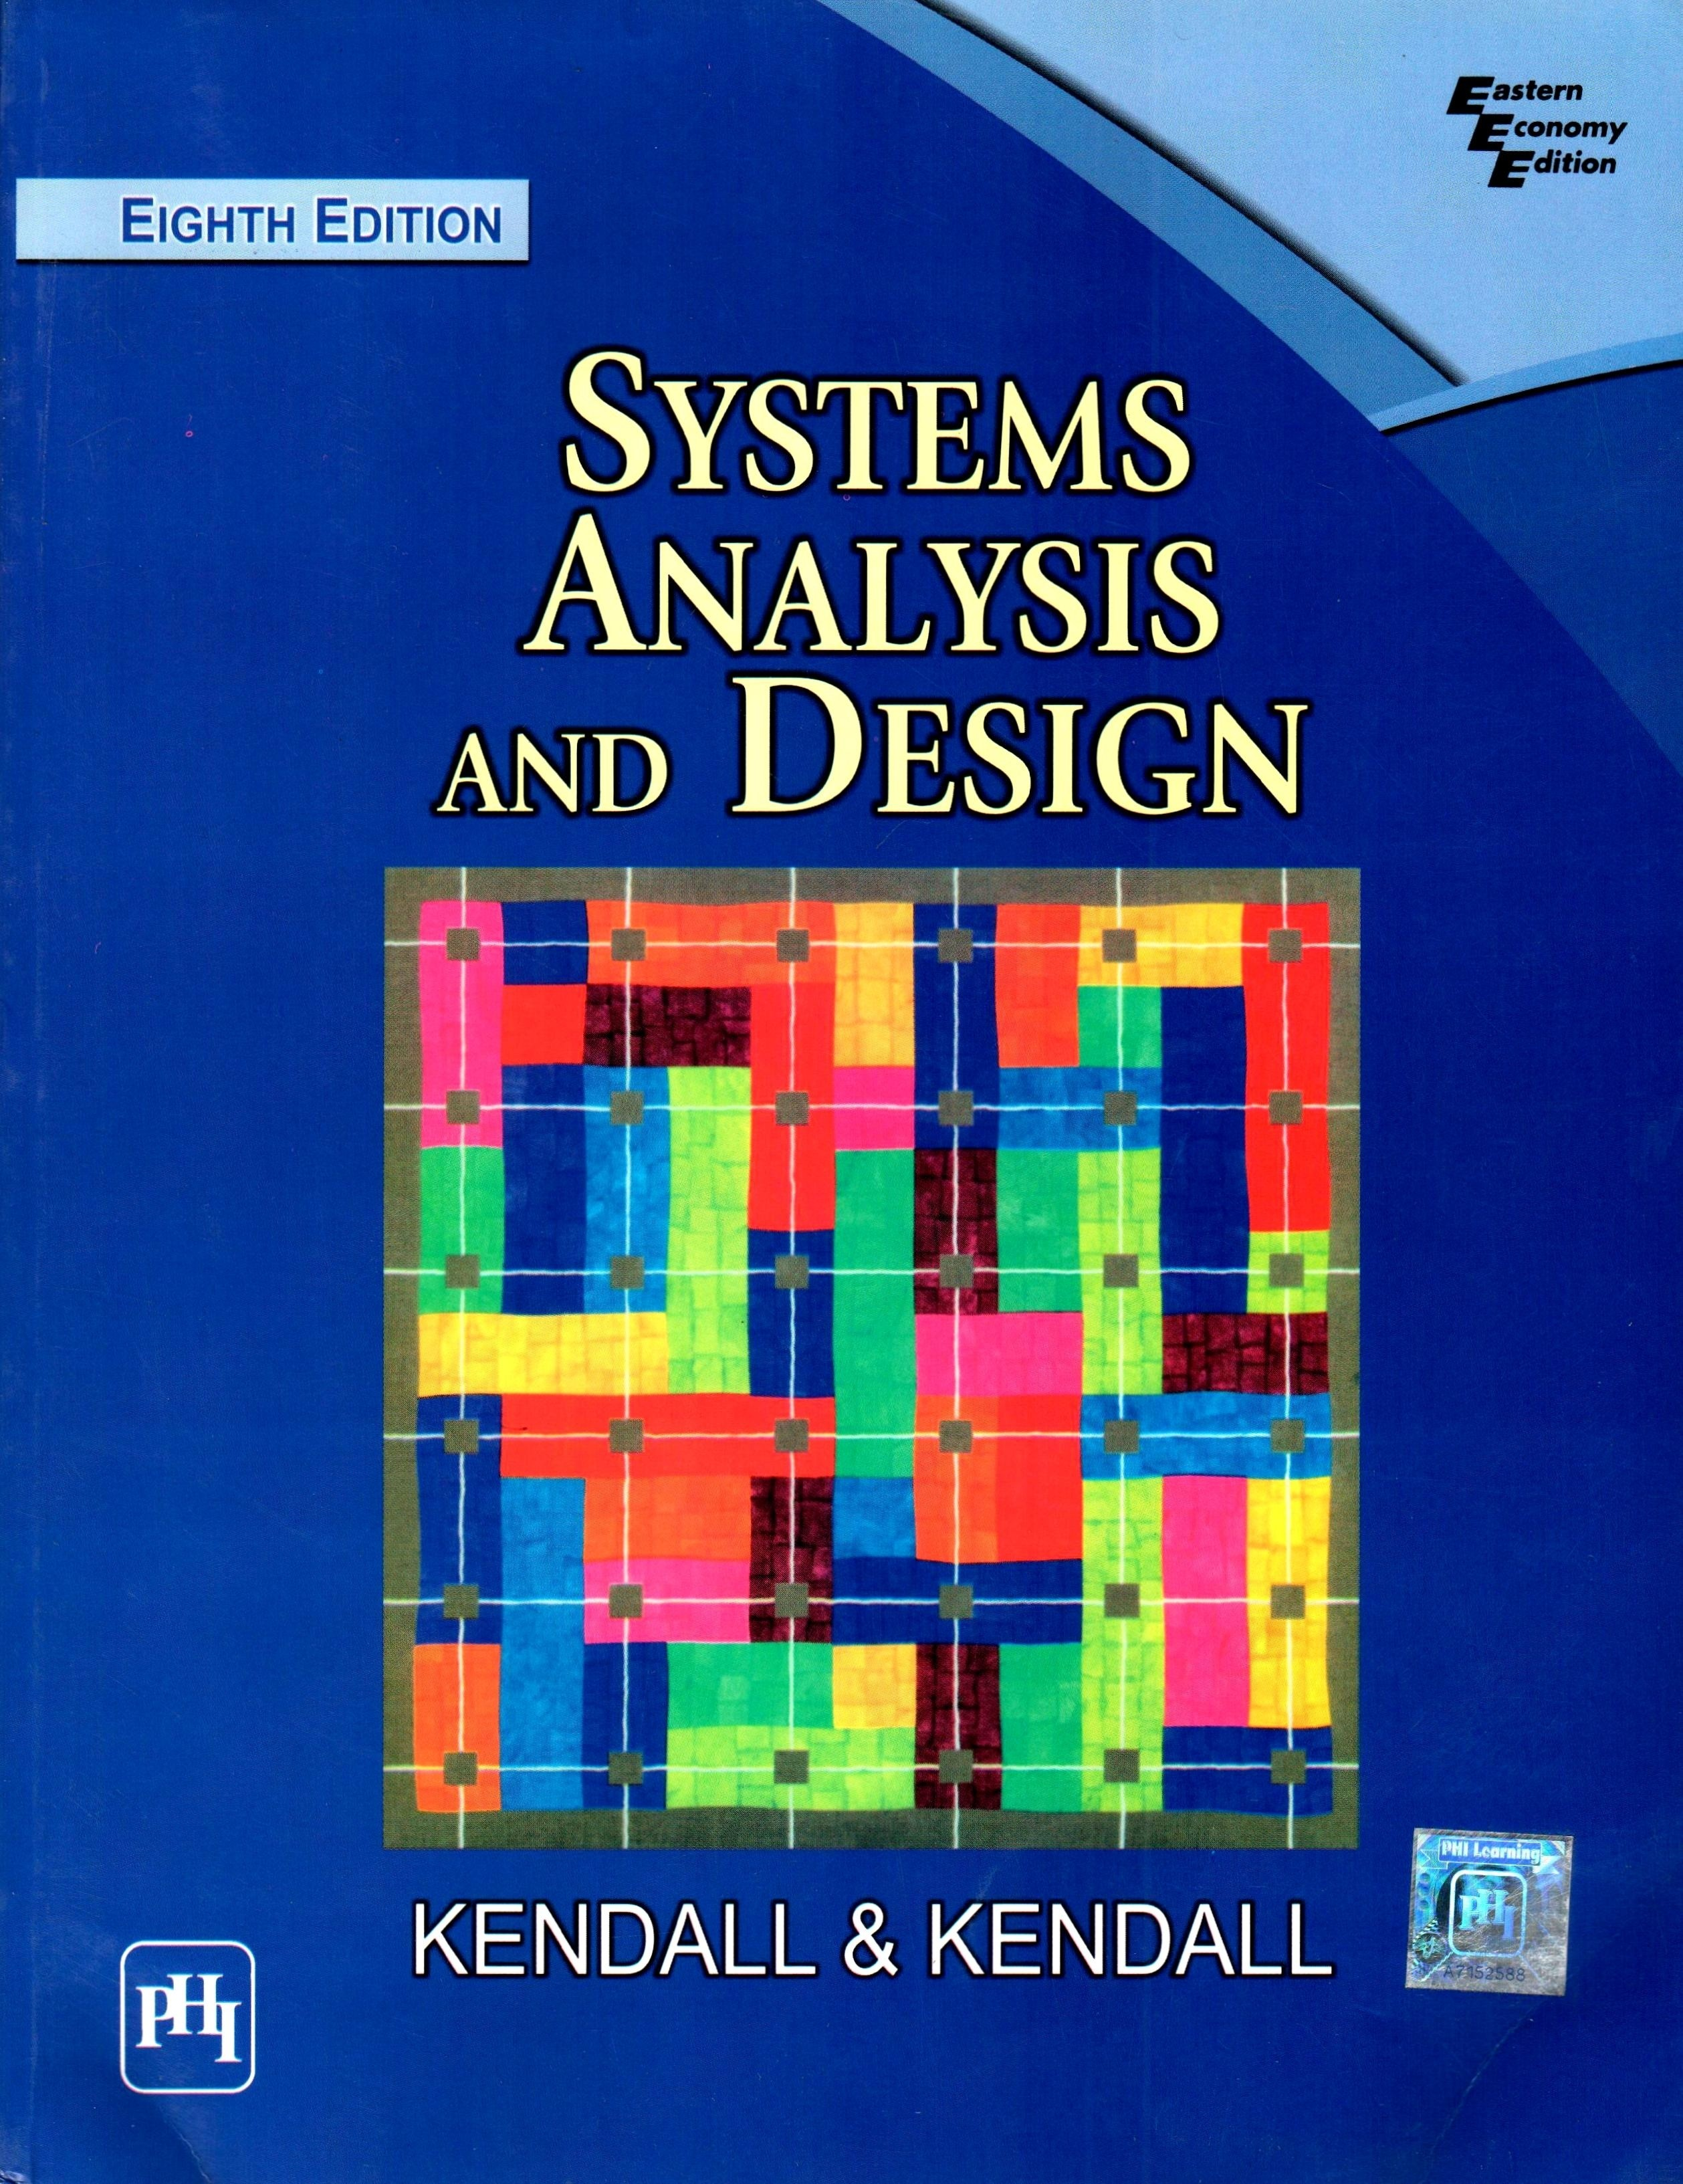 system analysis and development sample General systems analysis links systems and systems thinking definition of a system role of use cases in system analysis and development scope creep.